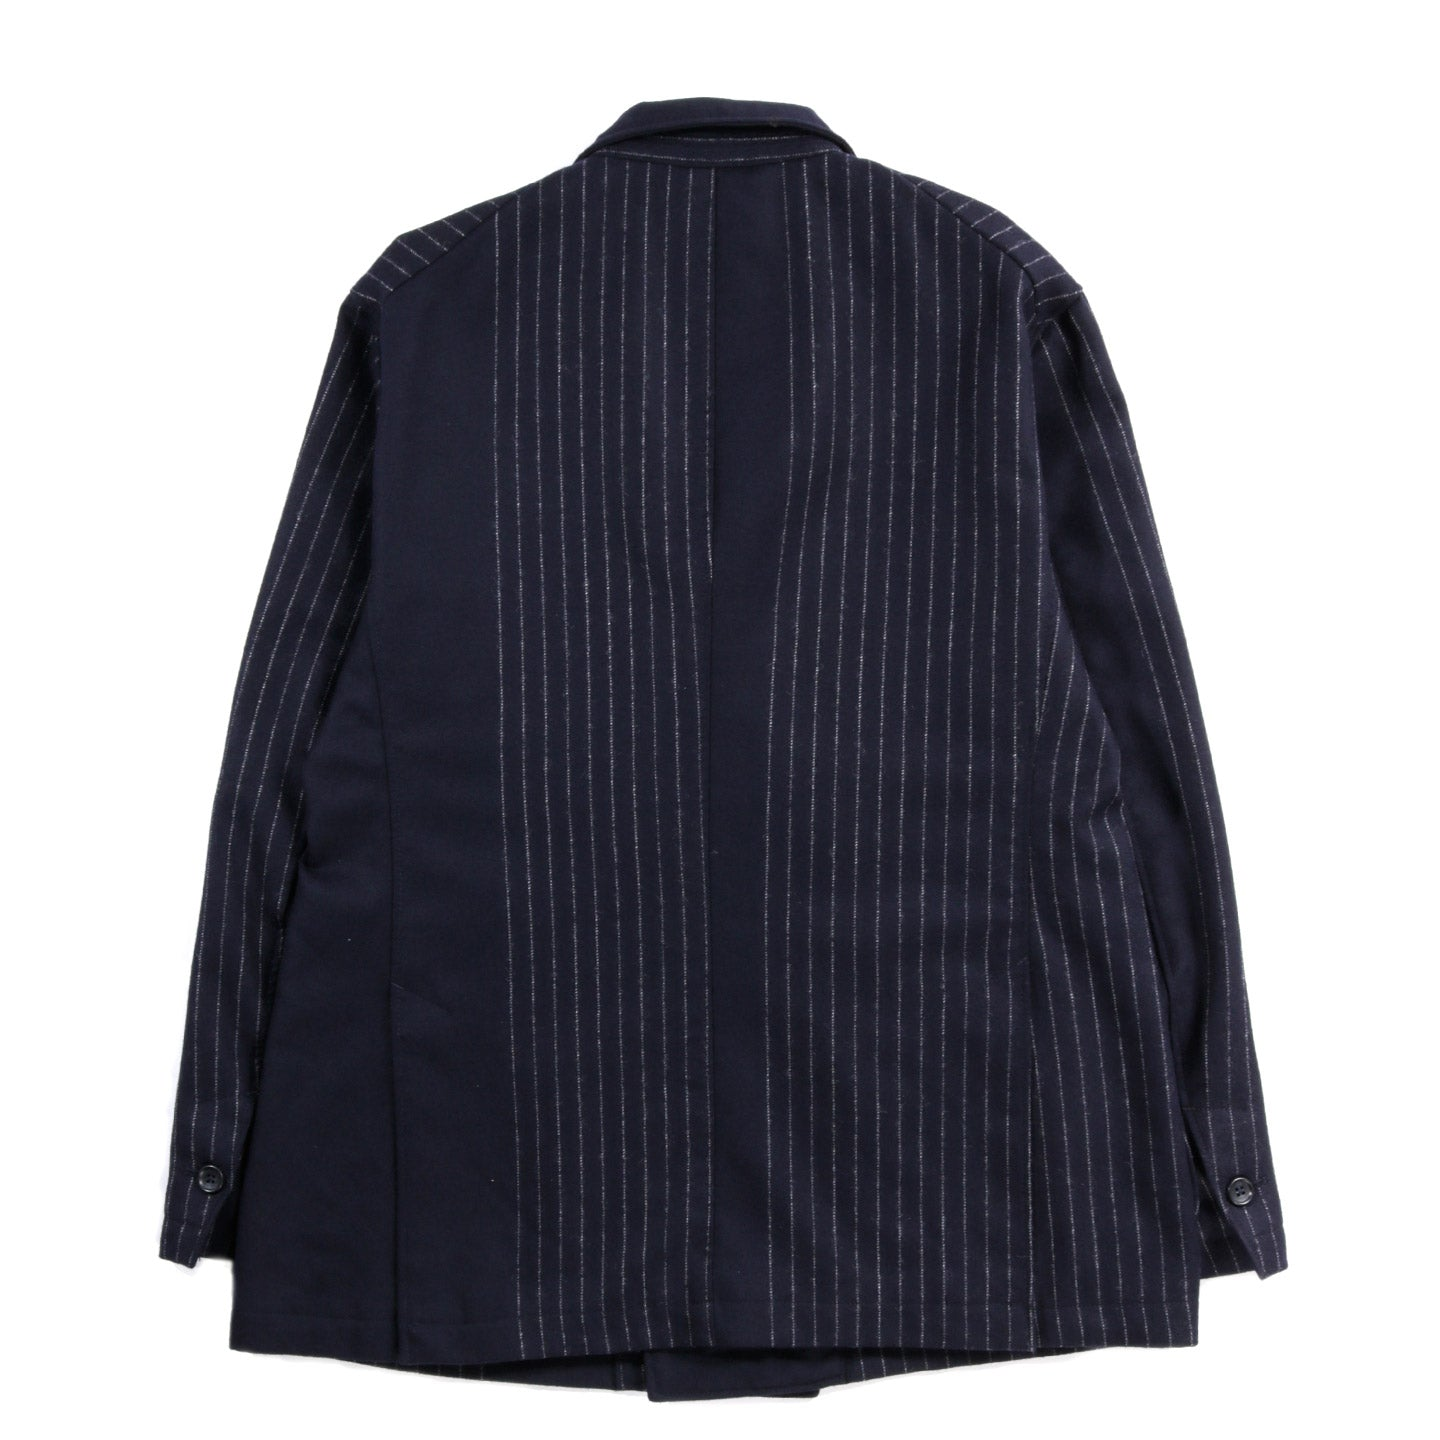 ENGINEERED GARMENTS NEWPORT JACKET DARK NAVY WOOL CHALK STRIPE